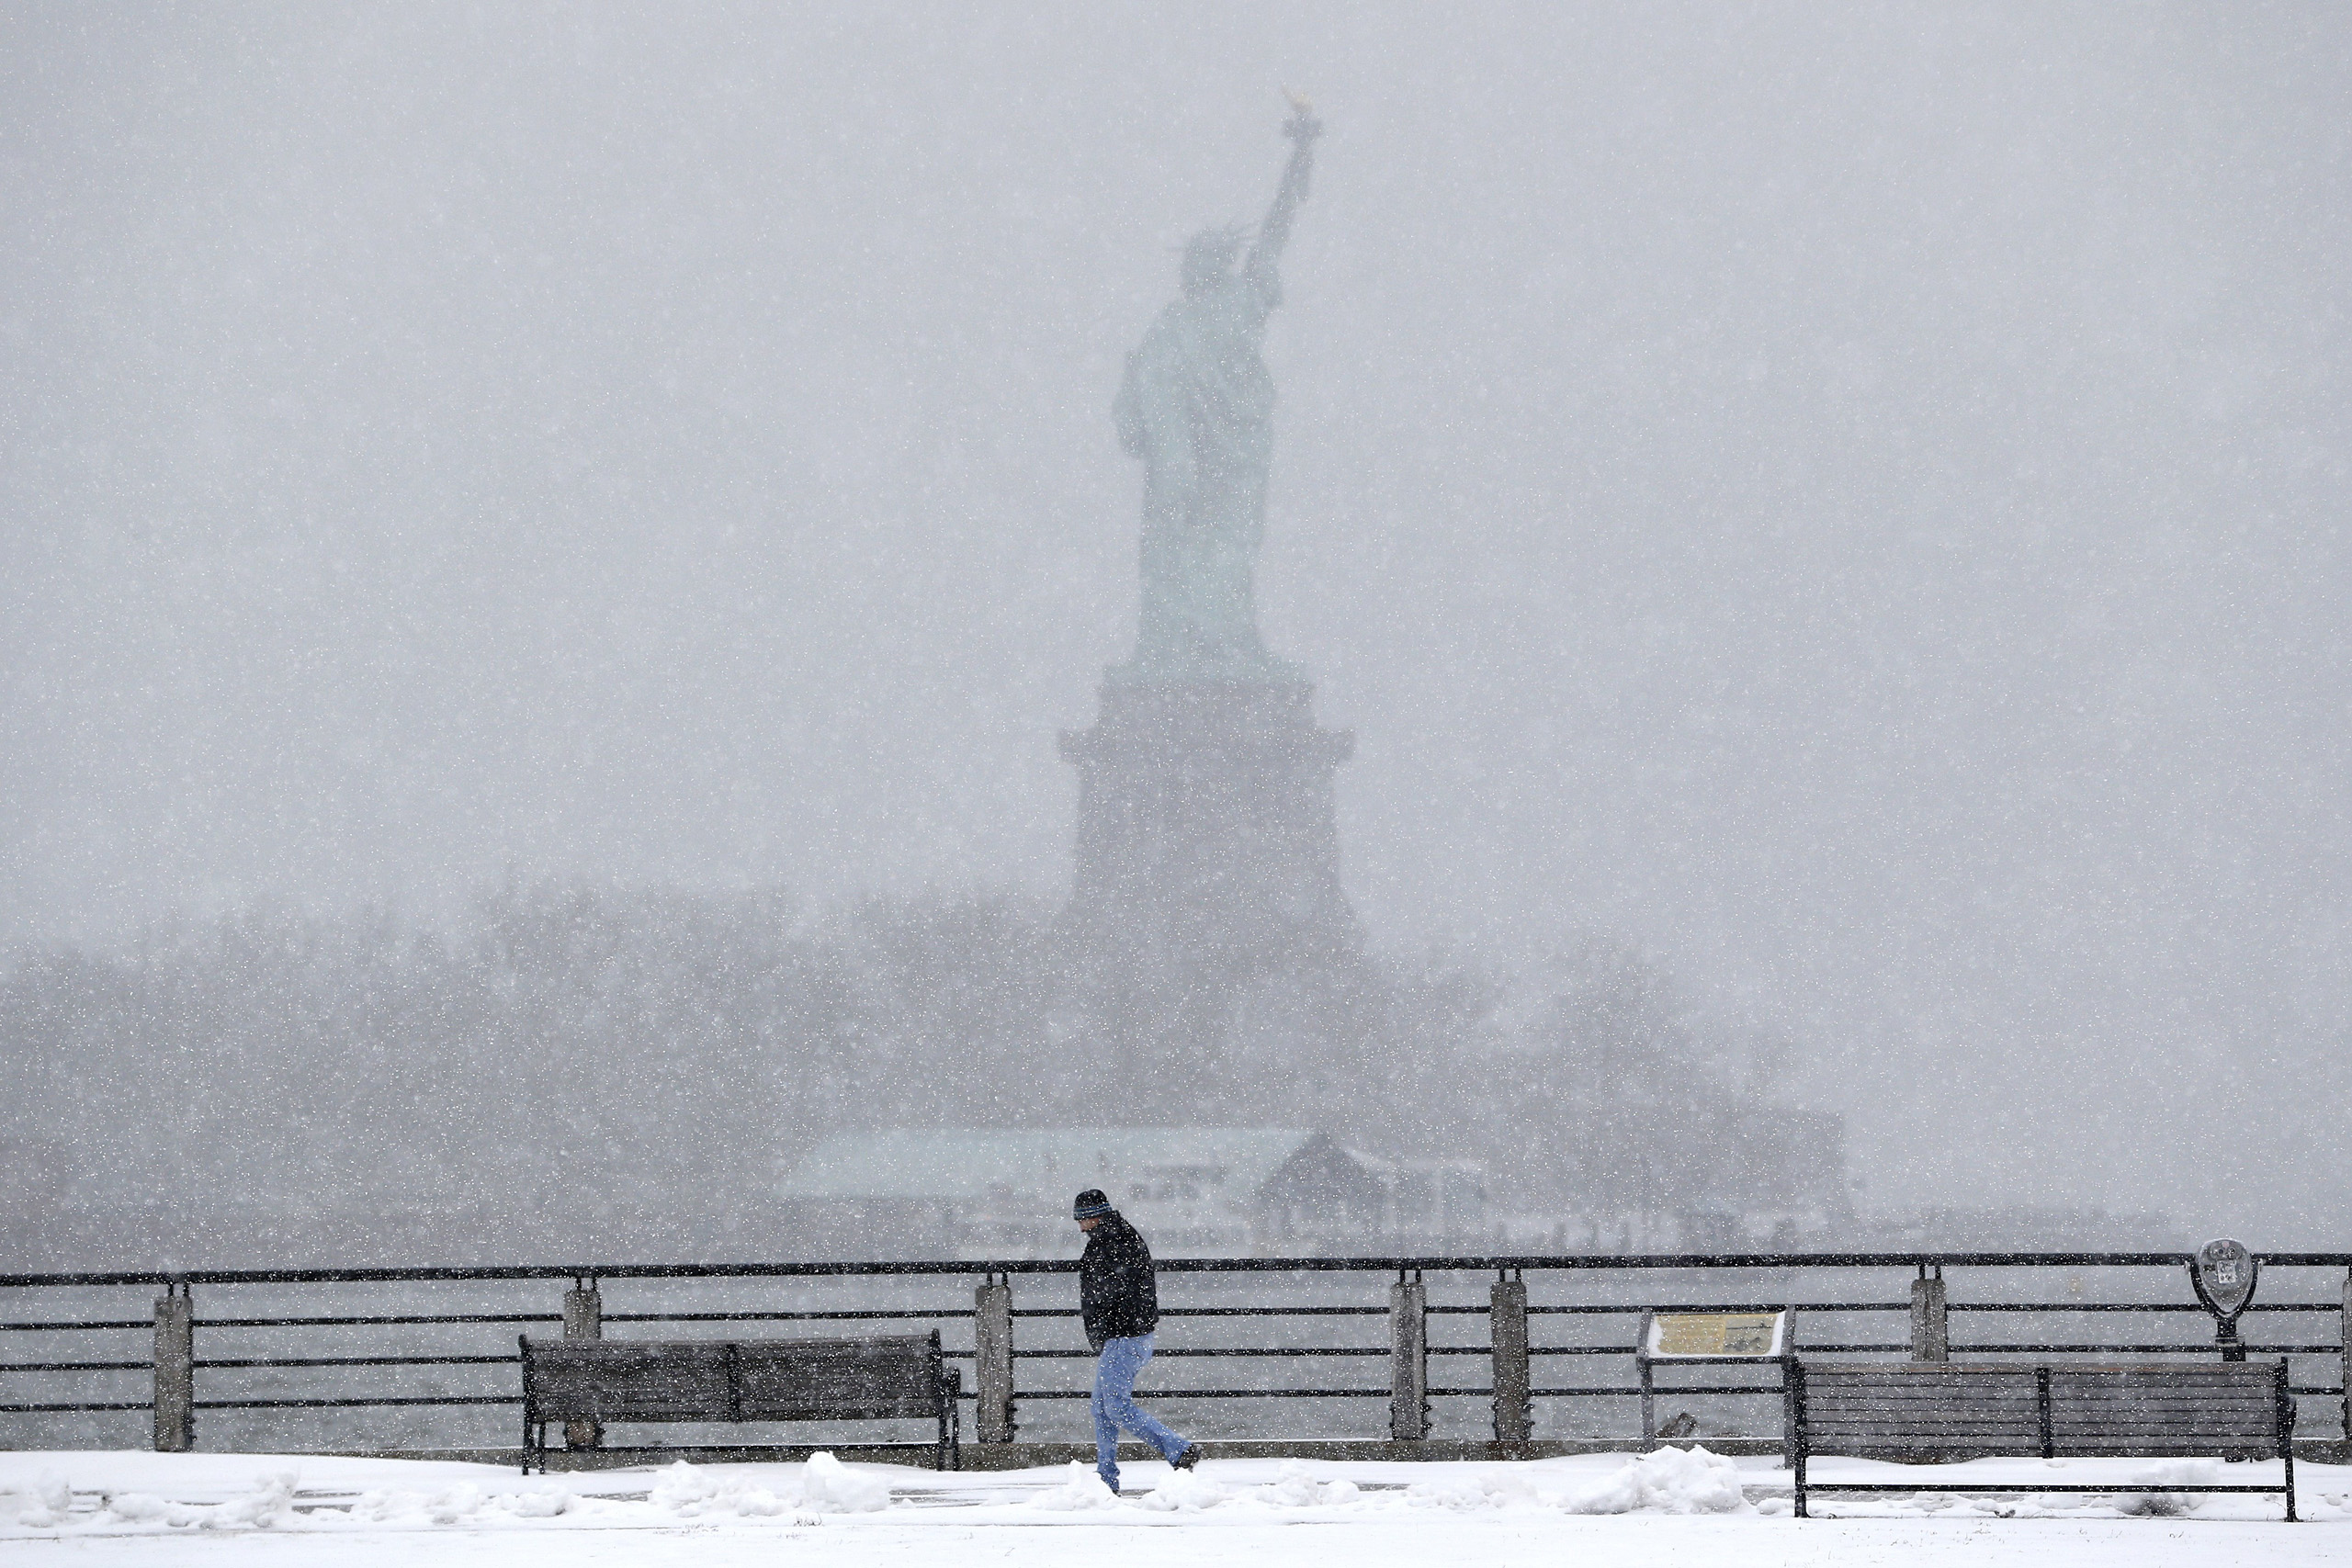 A man strolls on a walking path at Liberty State Park, with the Statue of Liberty in the distance, in Jersey City, N.J. on Jan. 26, 2015.